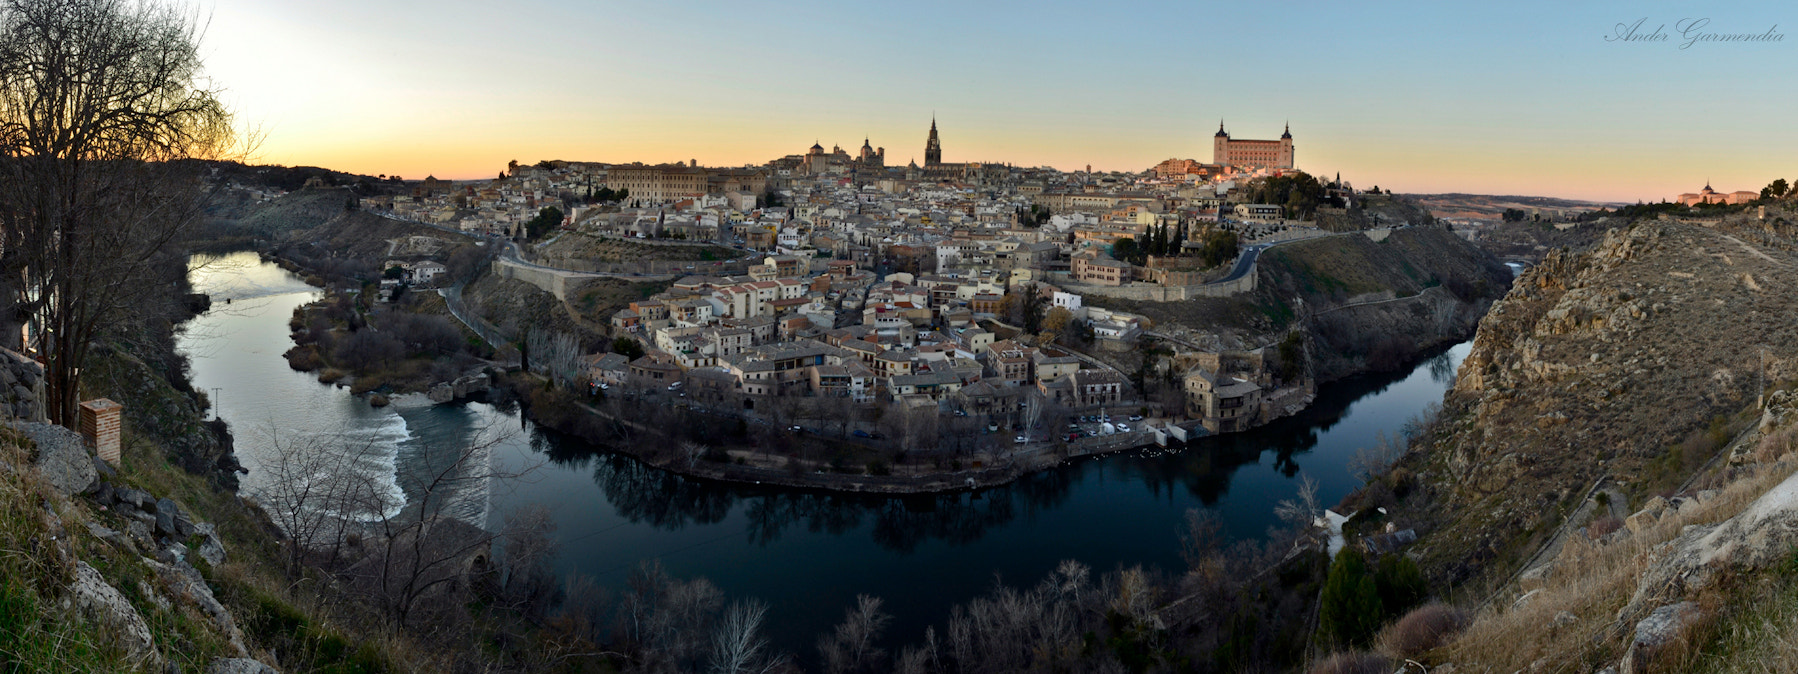 Photograph Toledo by Ander Garmendia Fernández on 500px